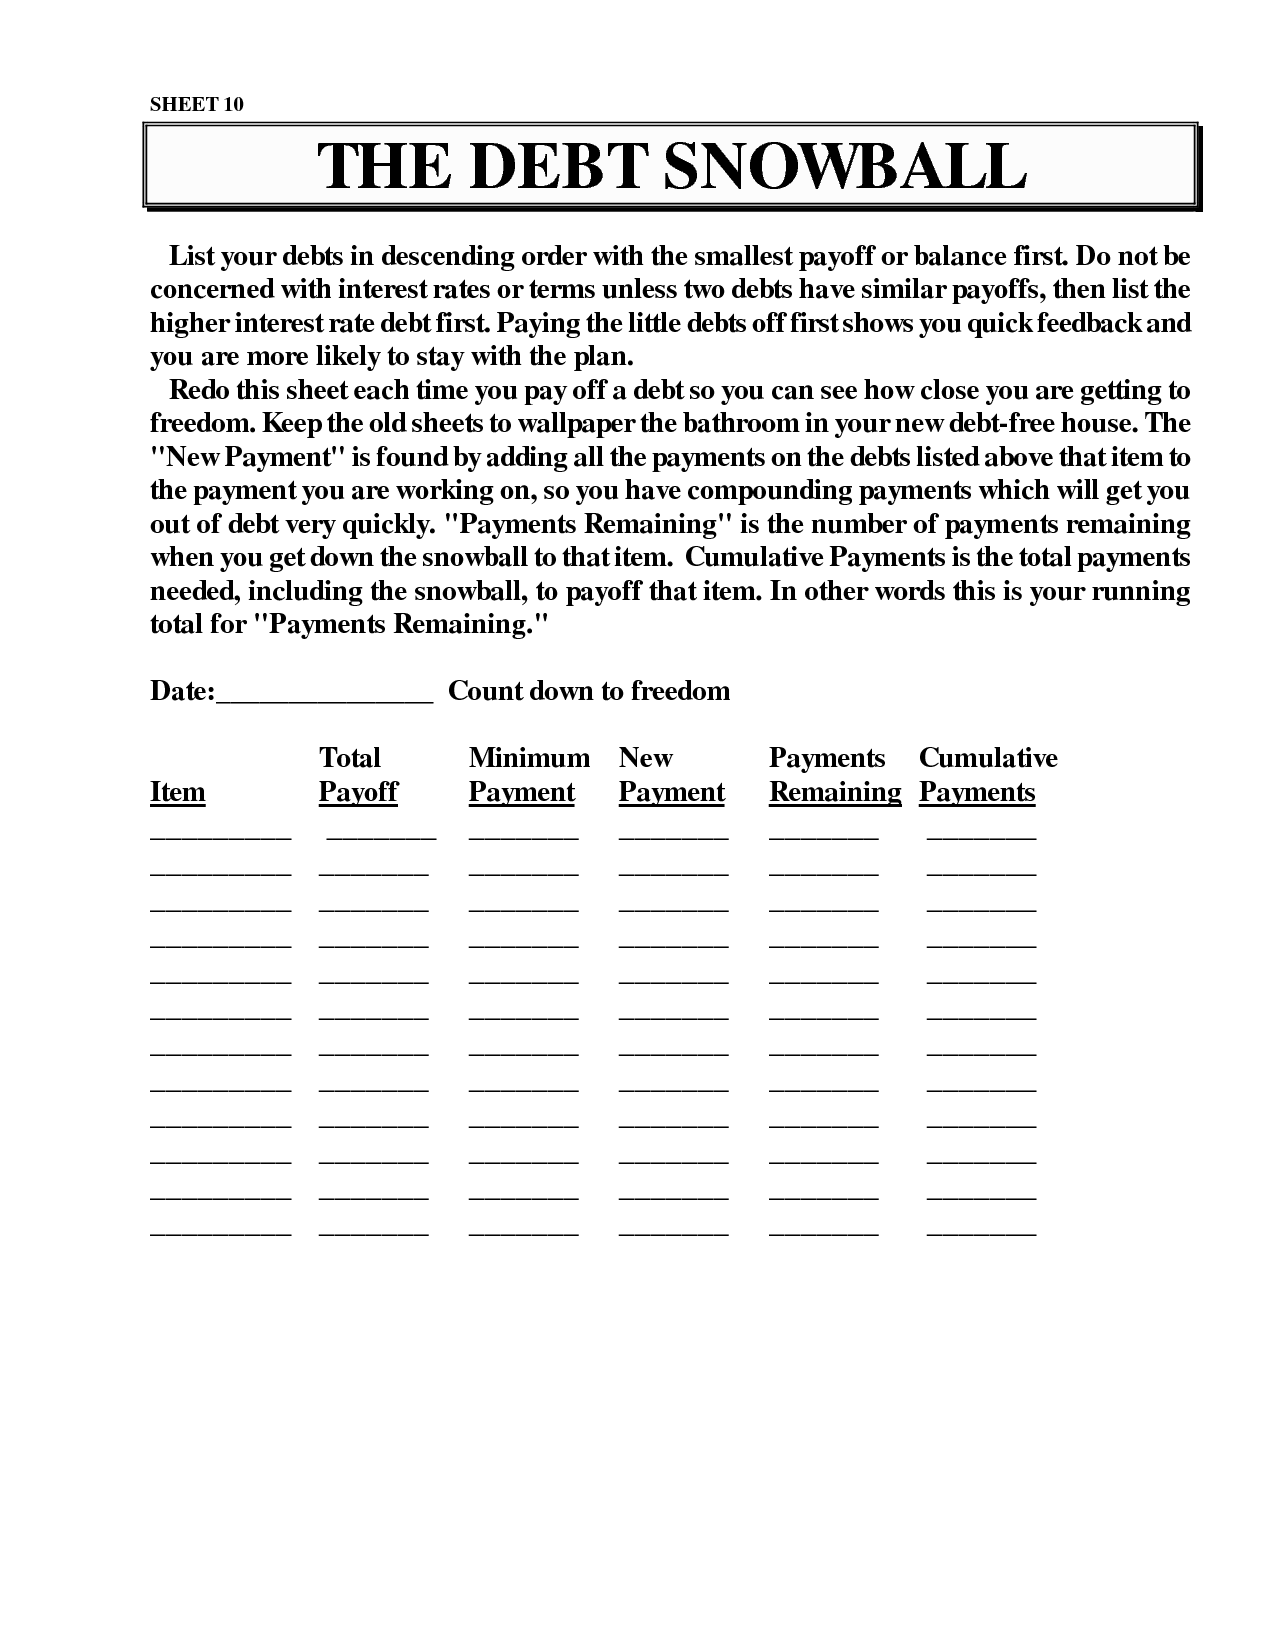 Worksheets Snowball Debt Worksheet dave ramsey snowball debt printable jianbochen memberpro co printable